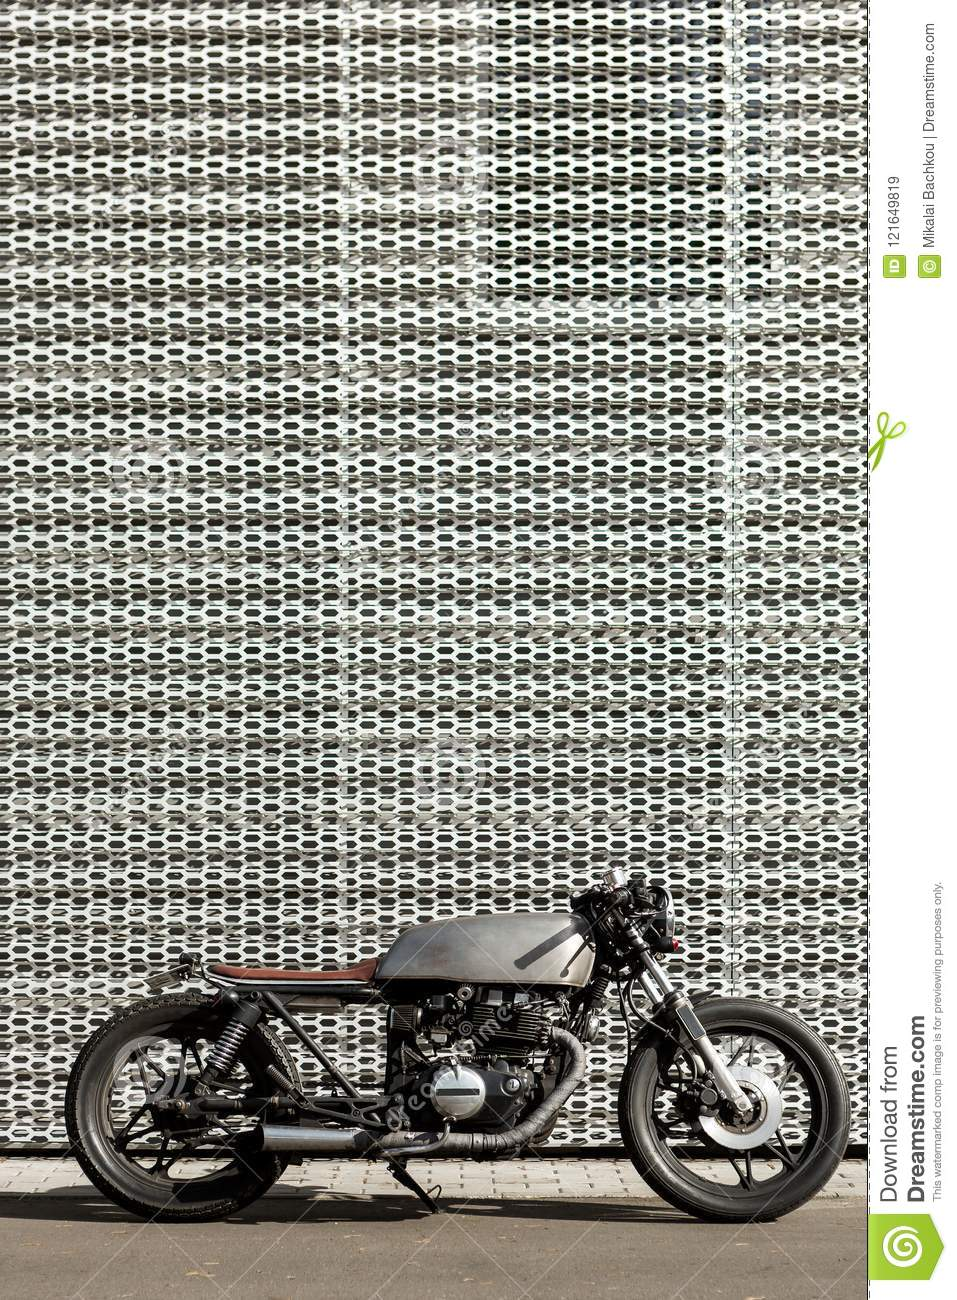 Vintage Motorcycle Cafe Racer Style Stock Image Image Of Single Grey 121649819